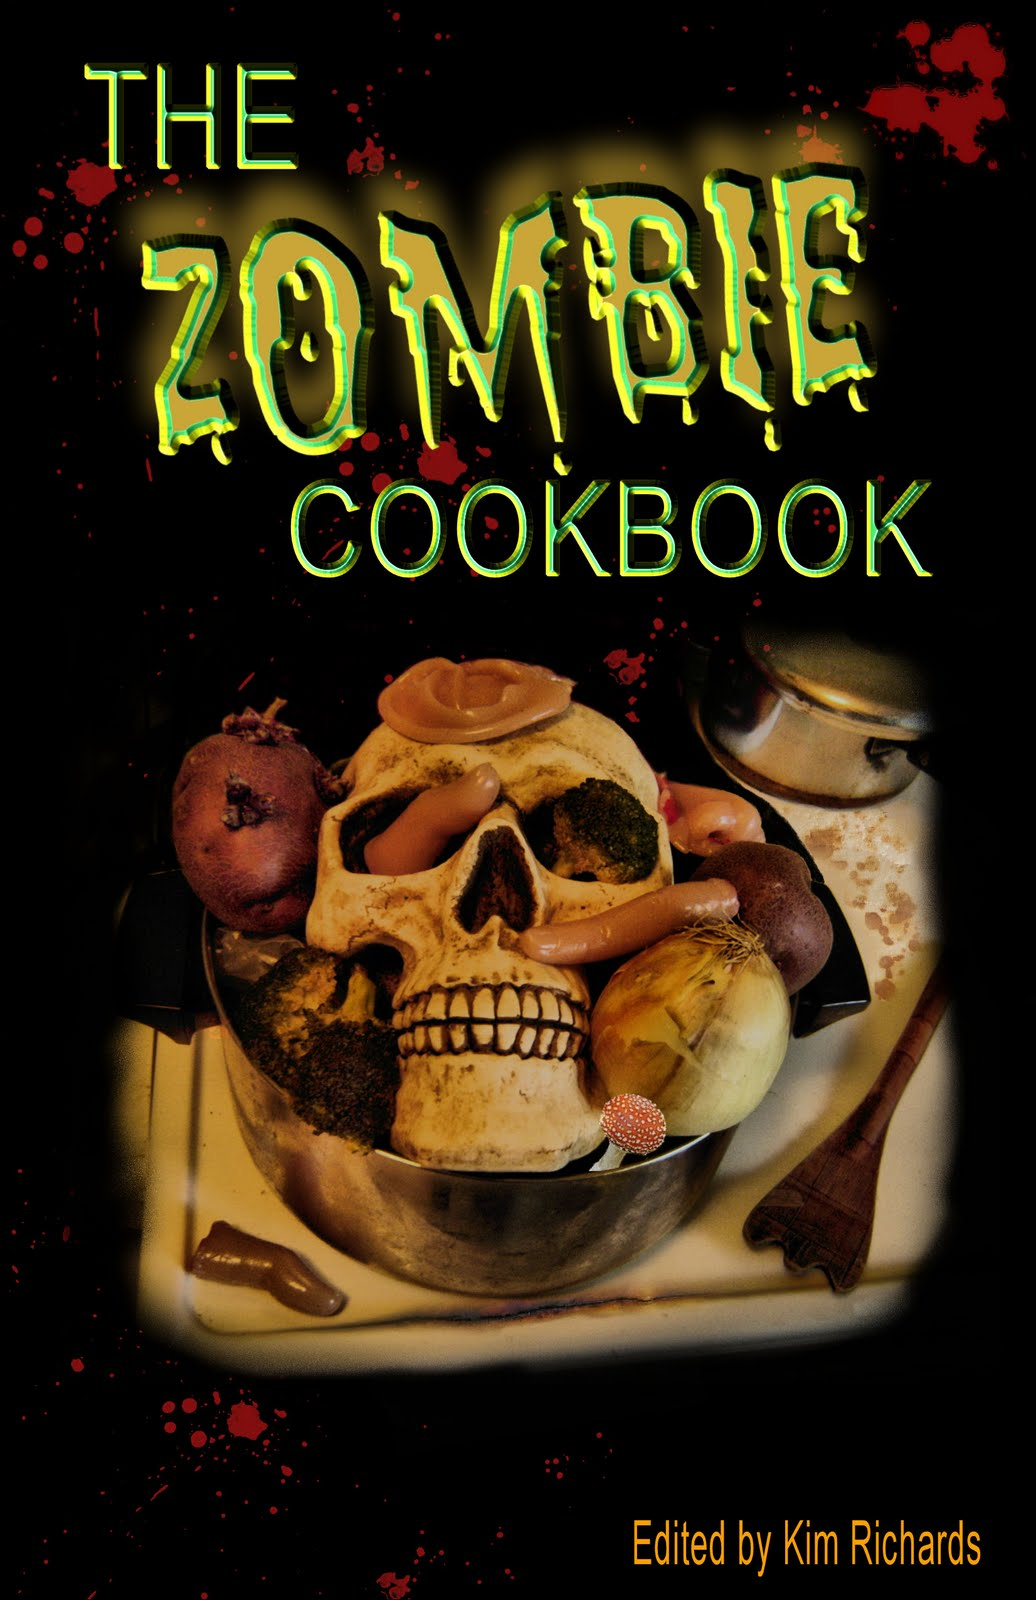 The Zombie Cookbook, edited by Kim Richards